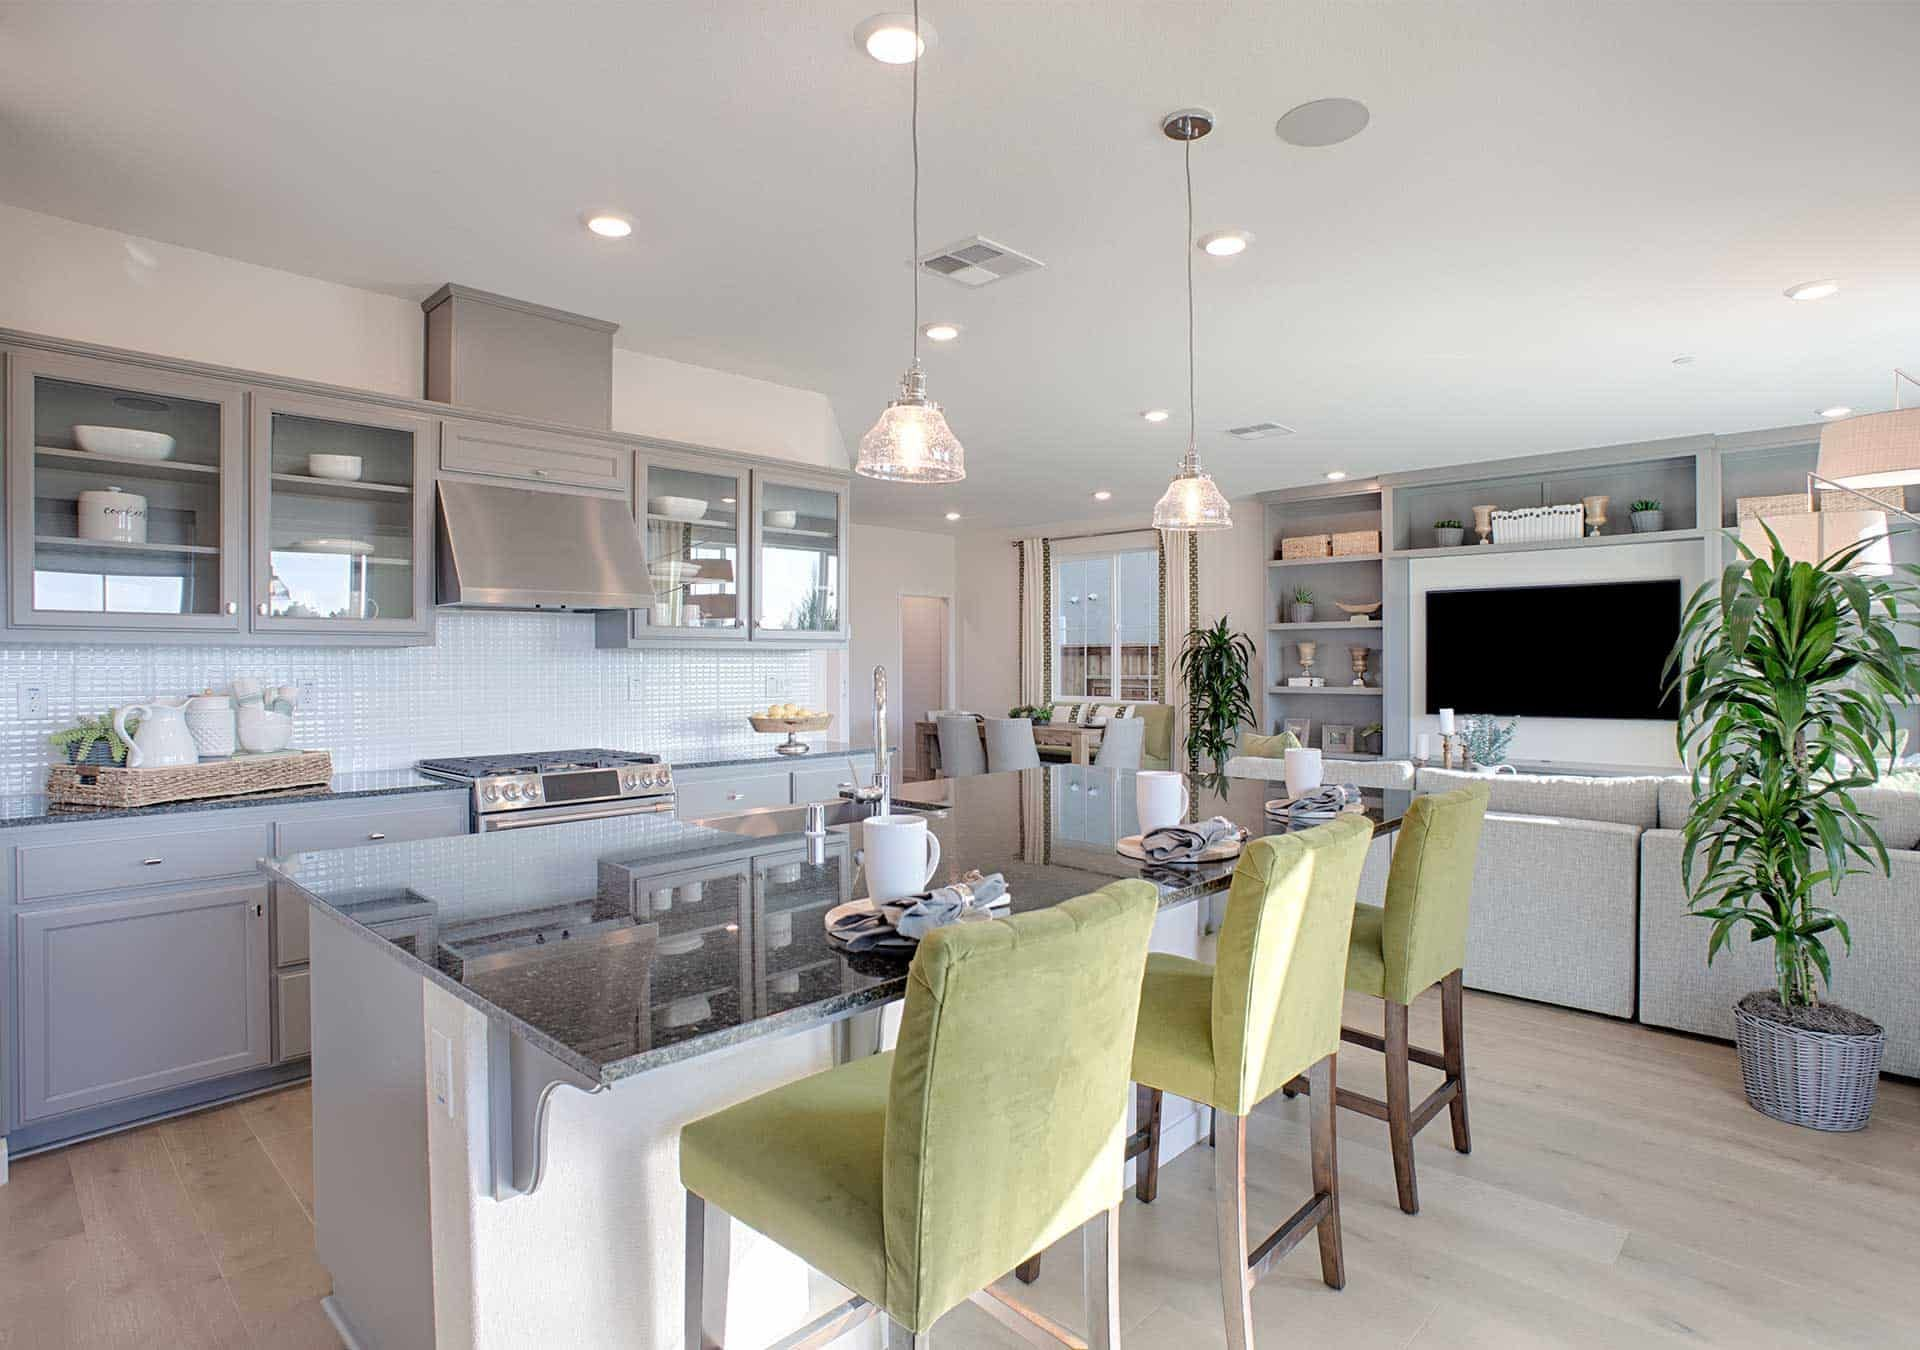 Kitchen featured in the Plan 4 By Tri Pointe Homes in Vallejo-Napa, CA